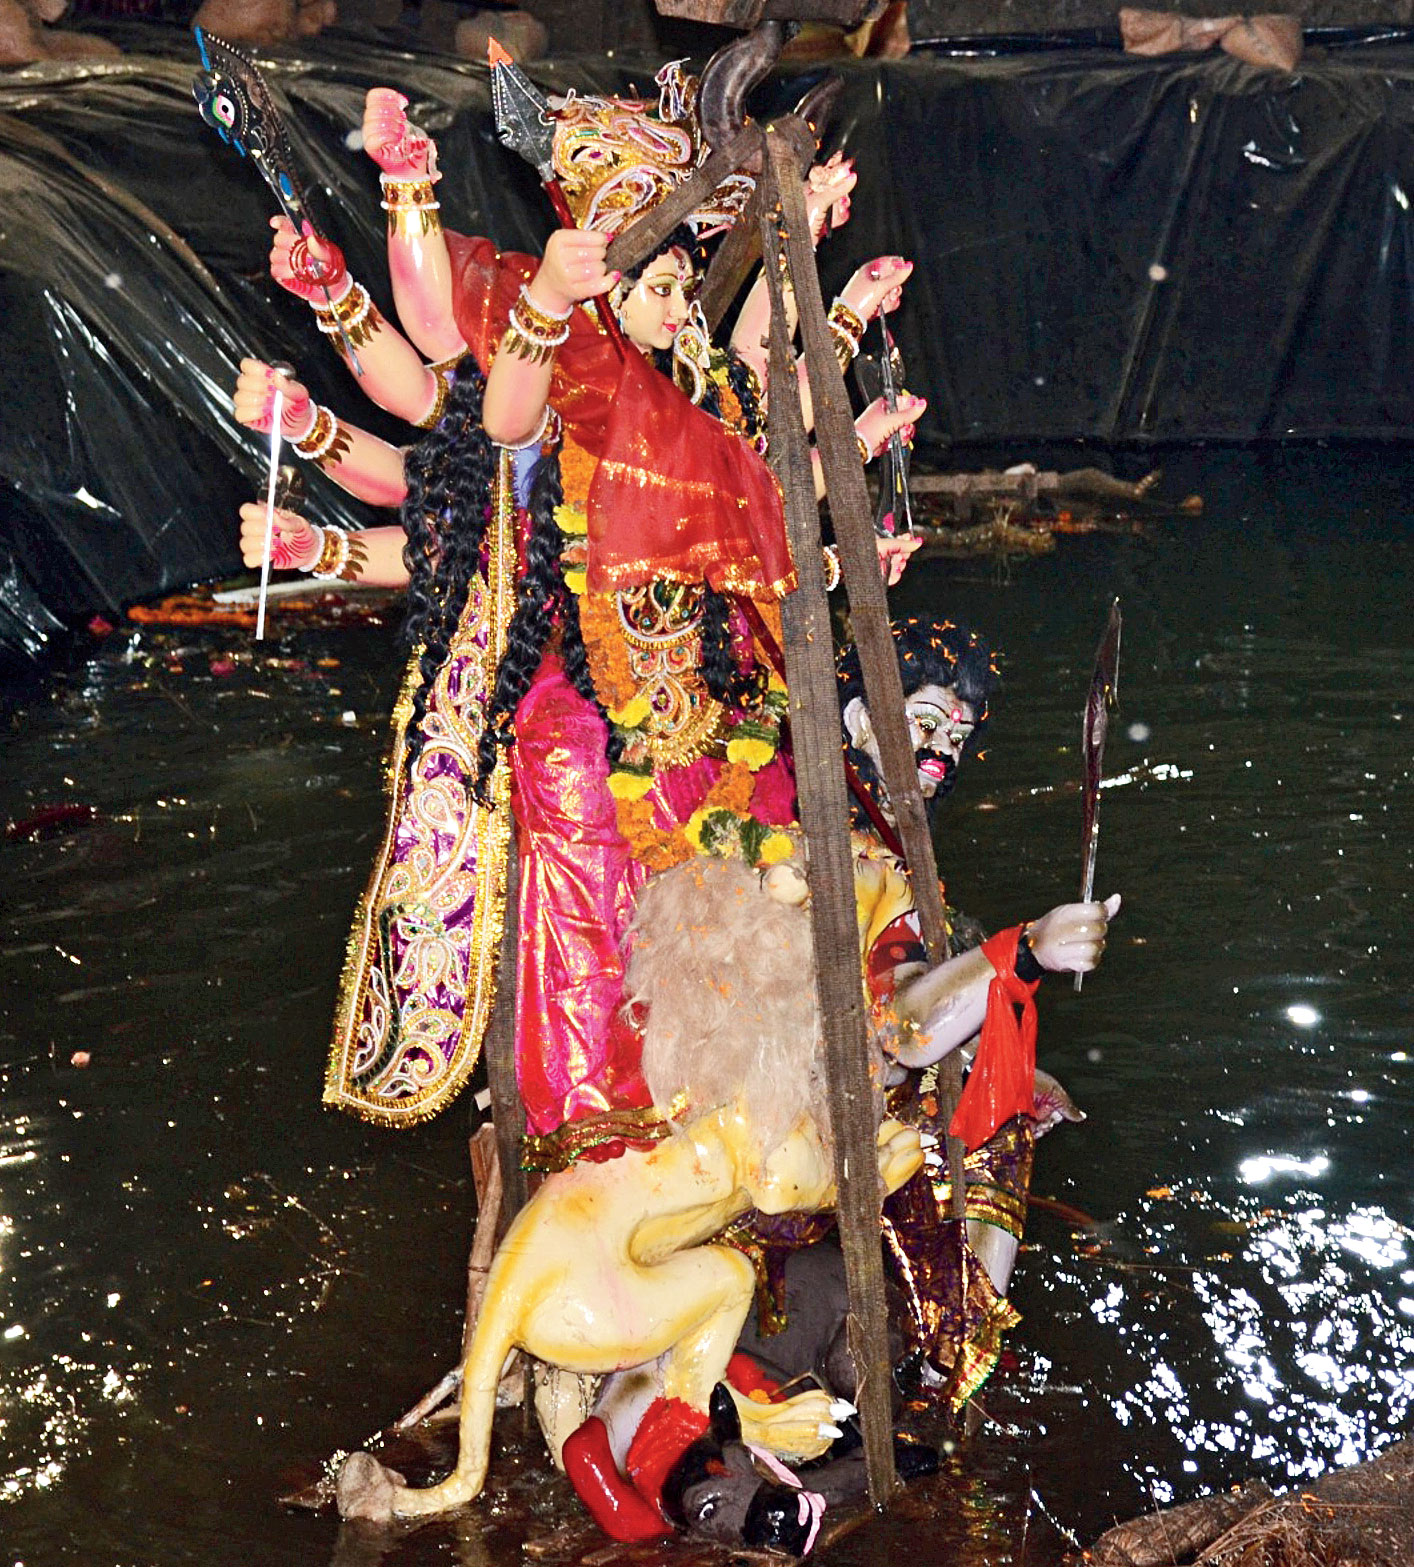 Bidding goodbye: People immerse a Durga idol in an artificial pond dug up by the Berhampur Municipal Corporation on Sunday.